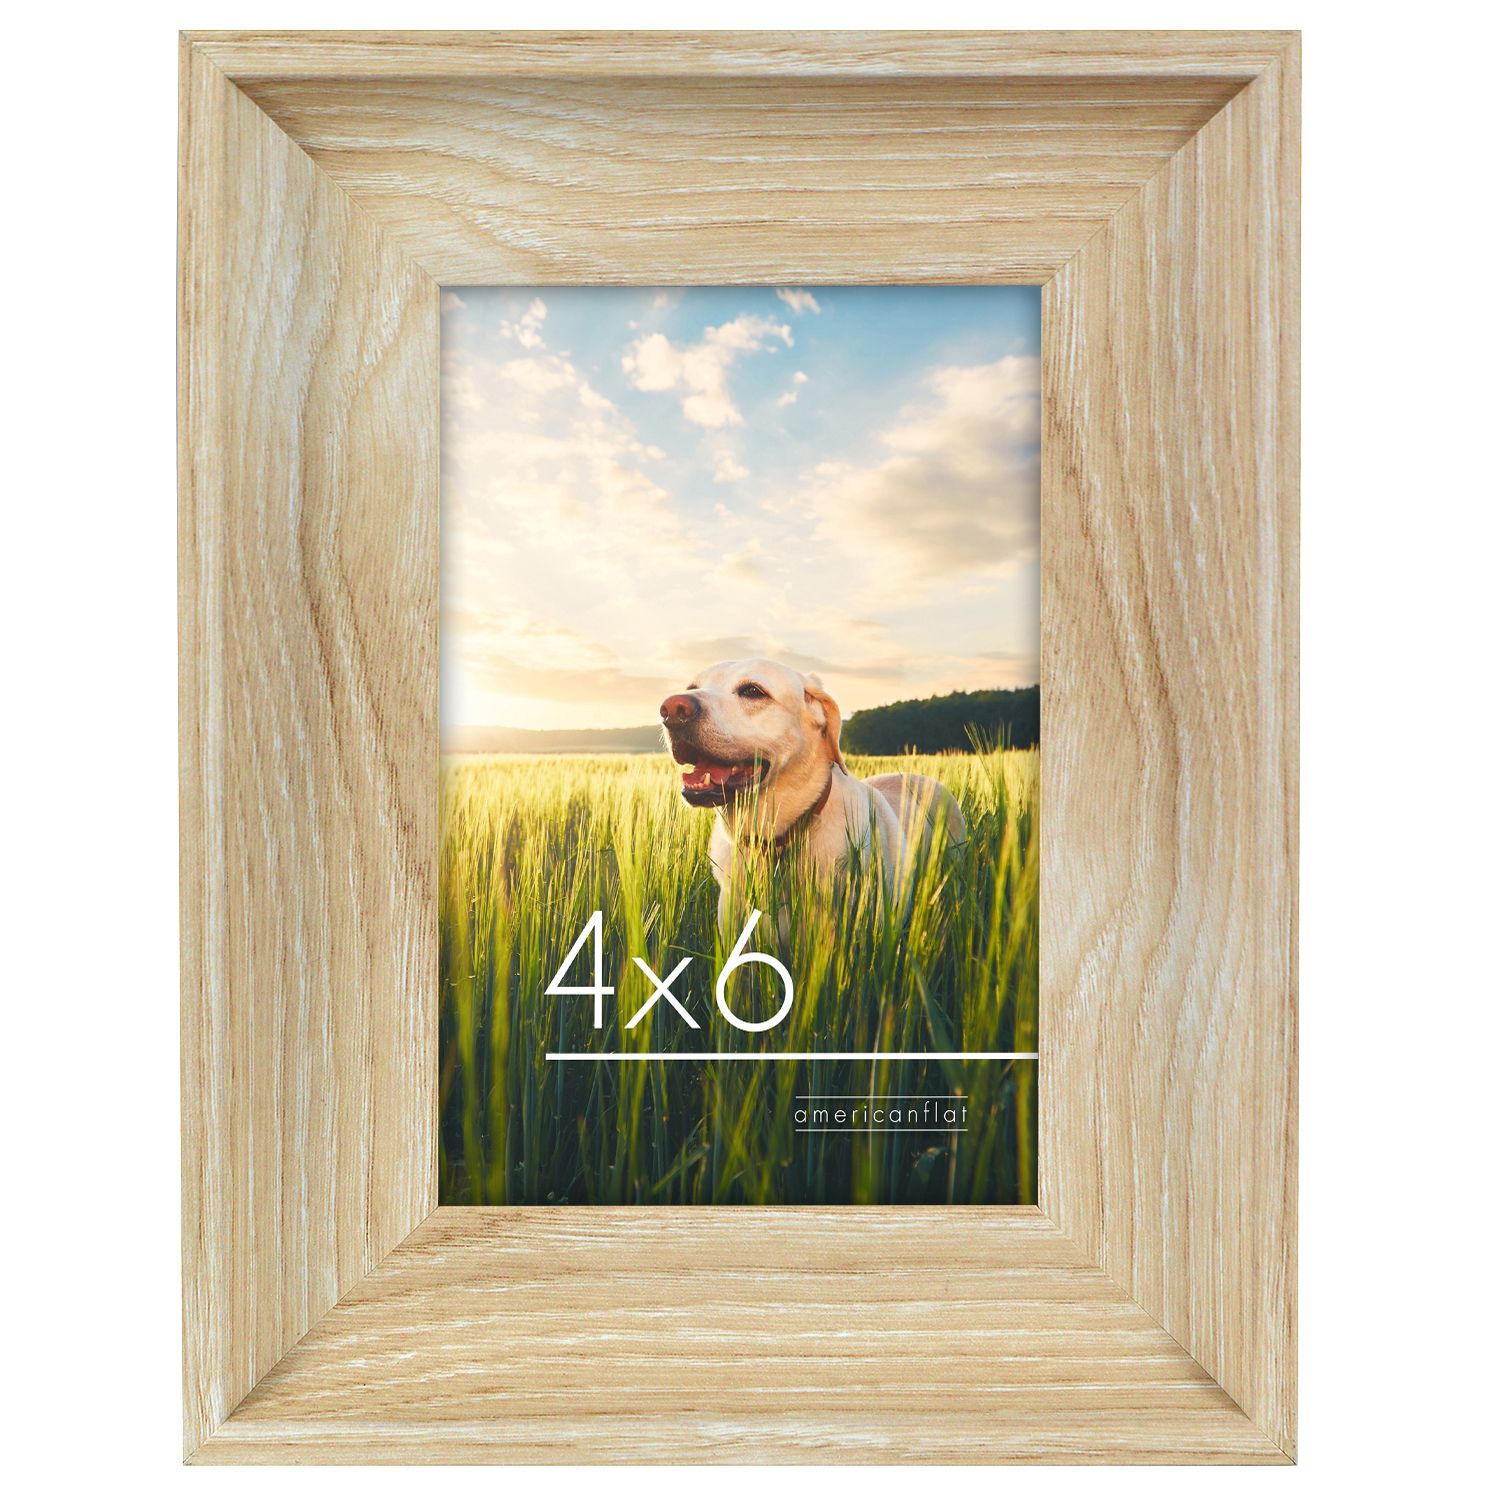 miniature 11 - Americanflat Wood Picture Frame 4x6 5x7 8x10 Wall Tabletop Easel Pick Size Color